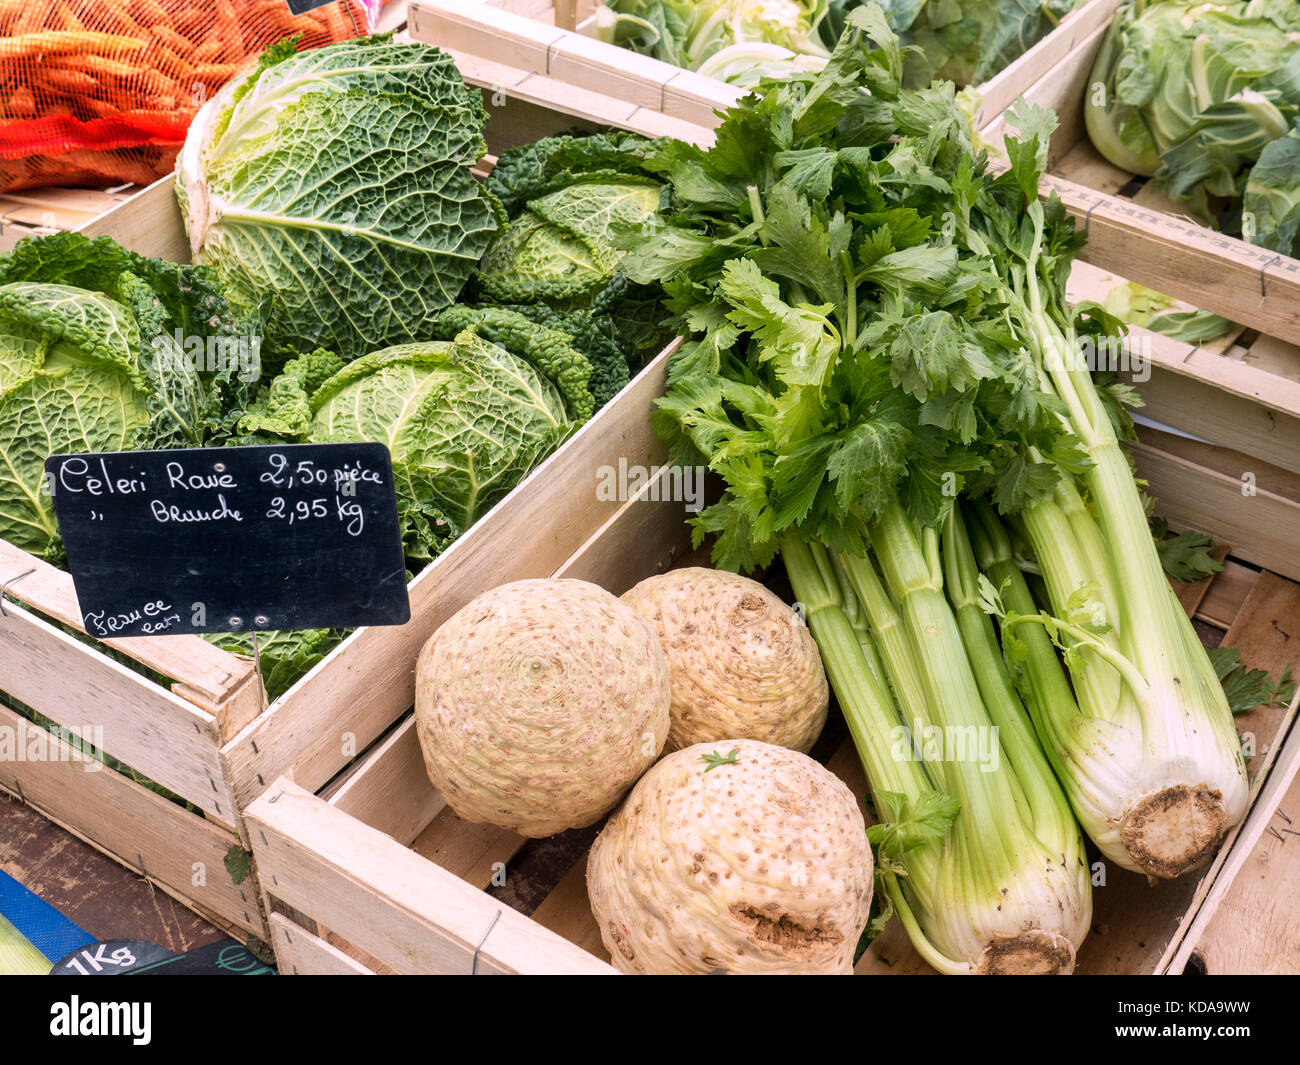 FRENCH FARMERS MARKET Vegetables display of Savoy cabbage, Celeriac and Celery in wooden crates, with small blackboard - Stock Image